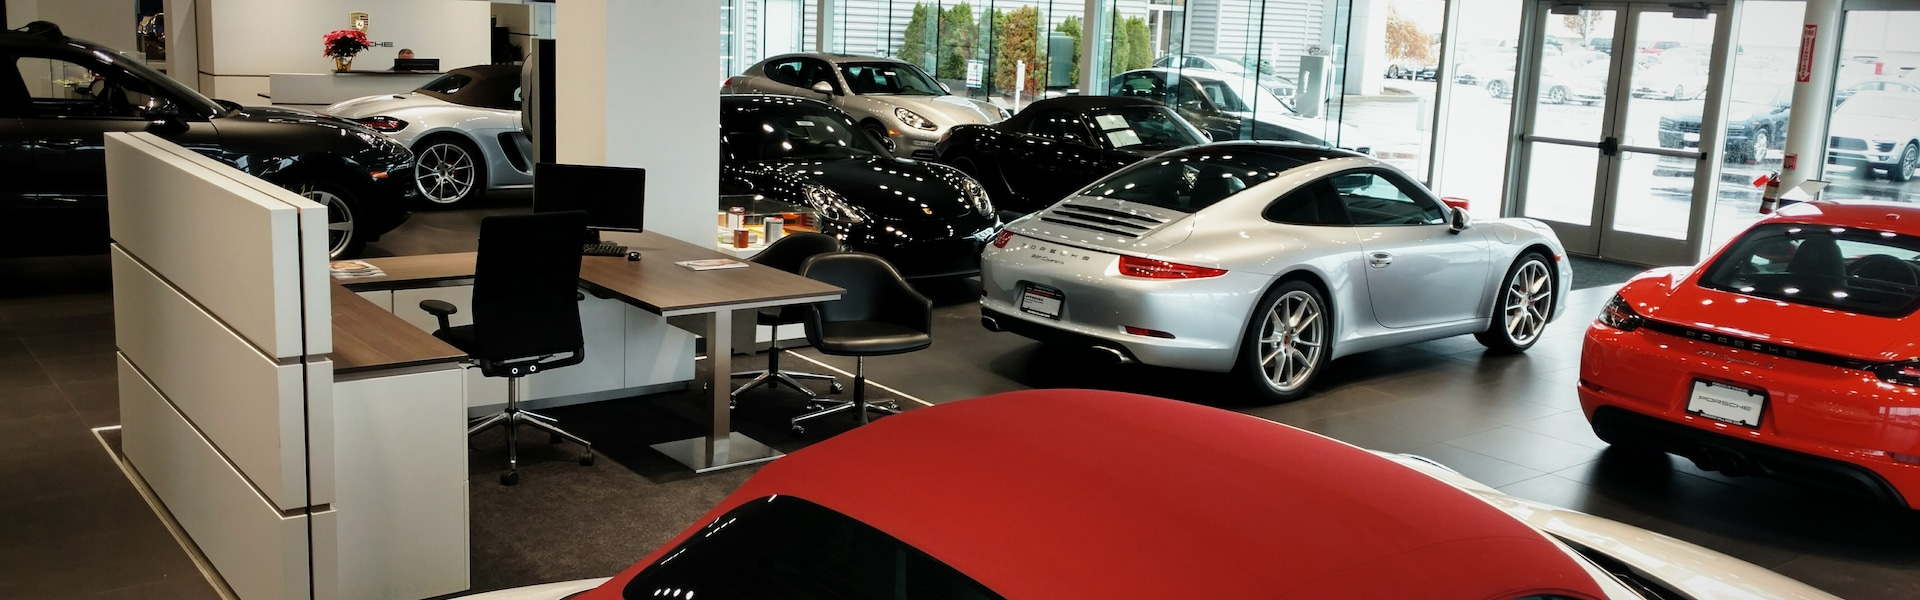 Buy A Porsche In Cicero Syracuse Area Porsche Dealership